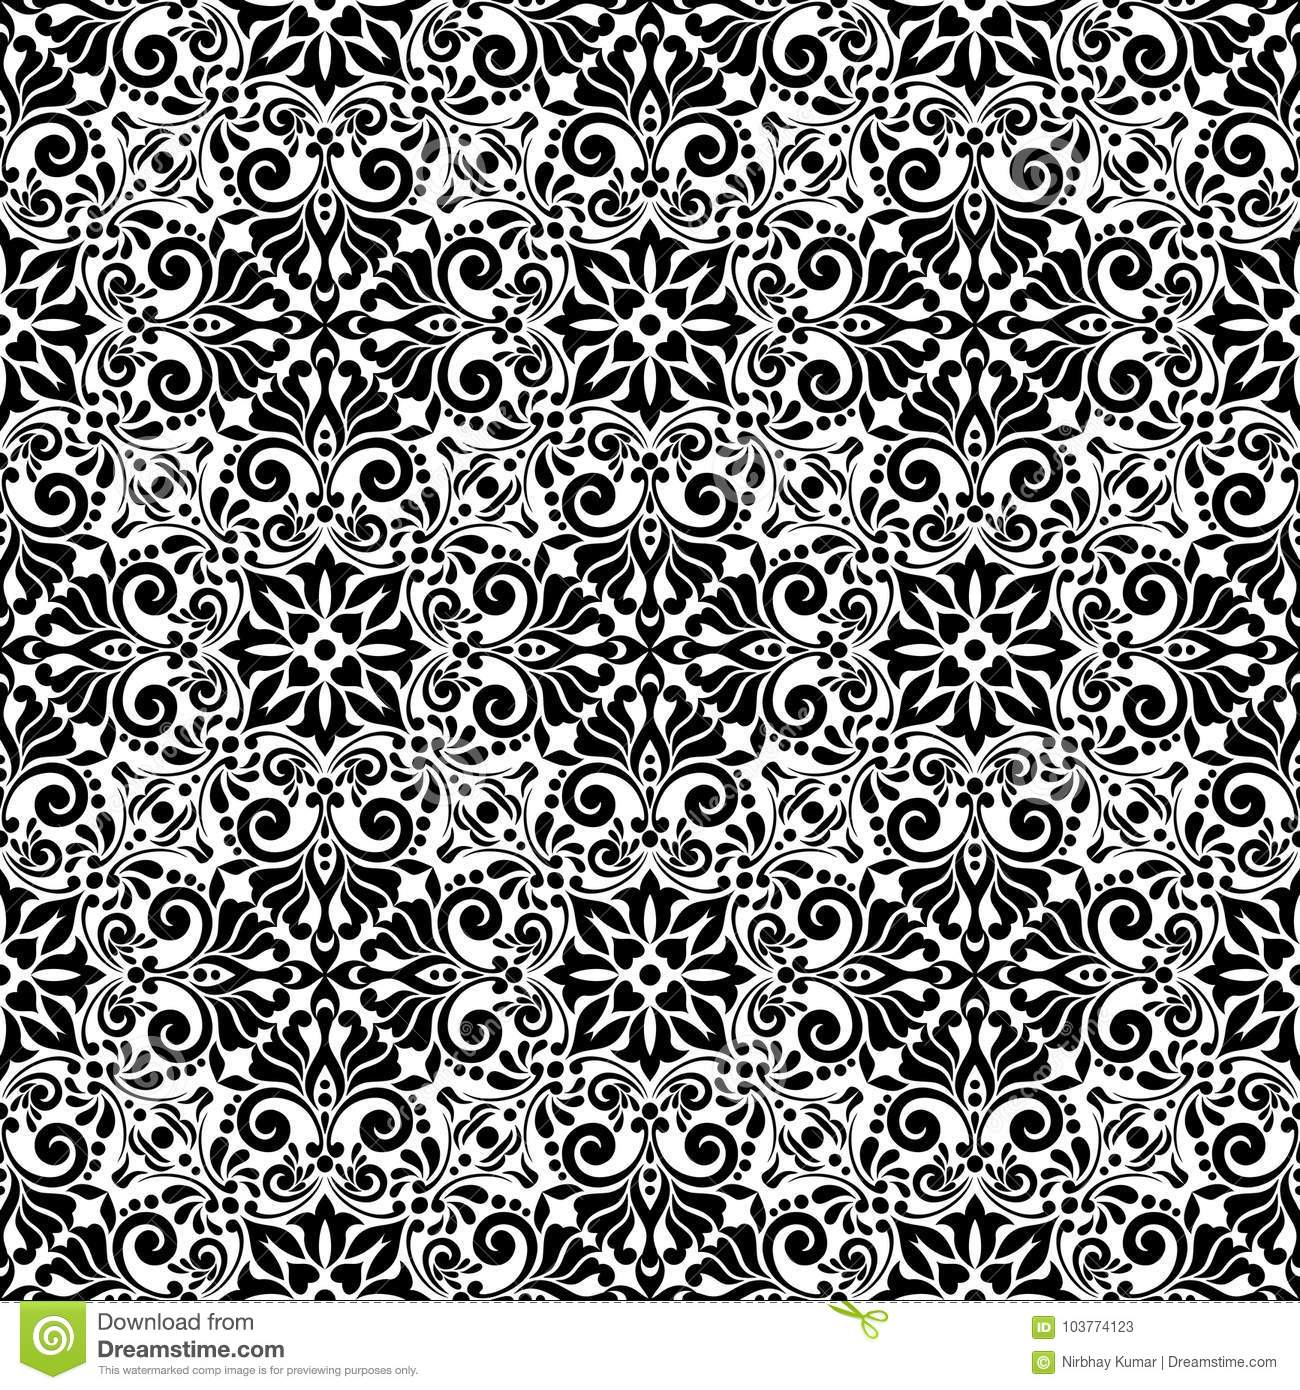 Vintage Flowers Pattern Black And White Seamless Background Stock